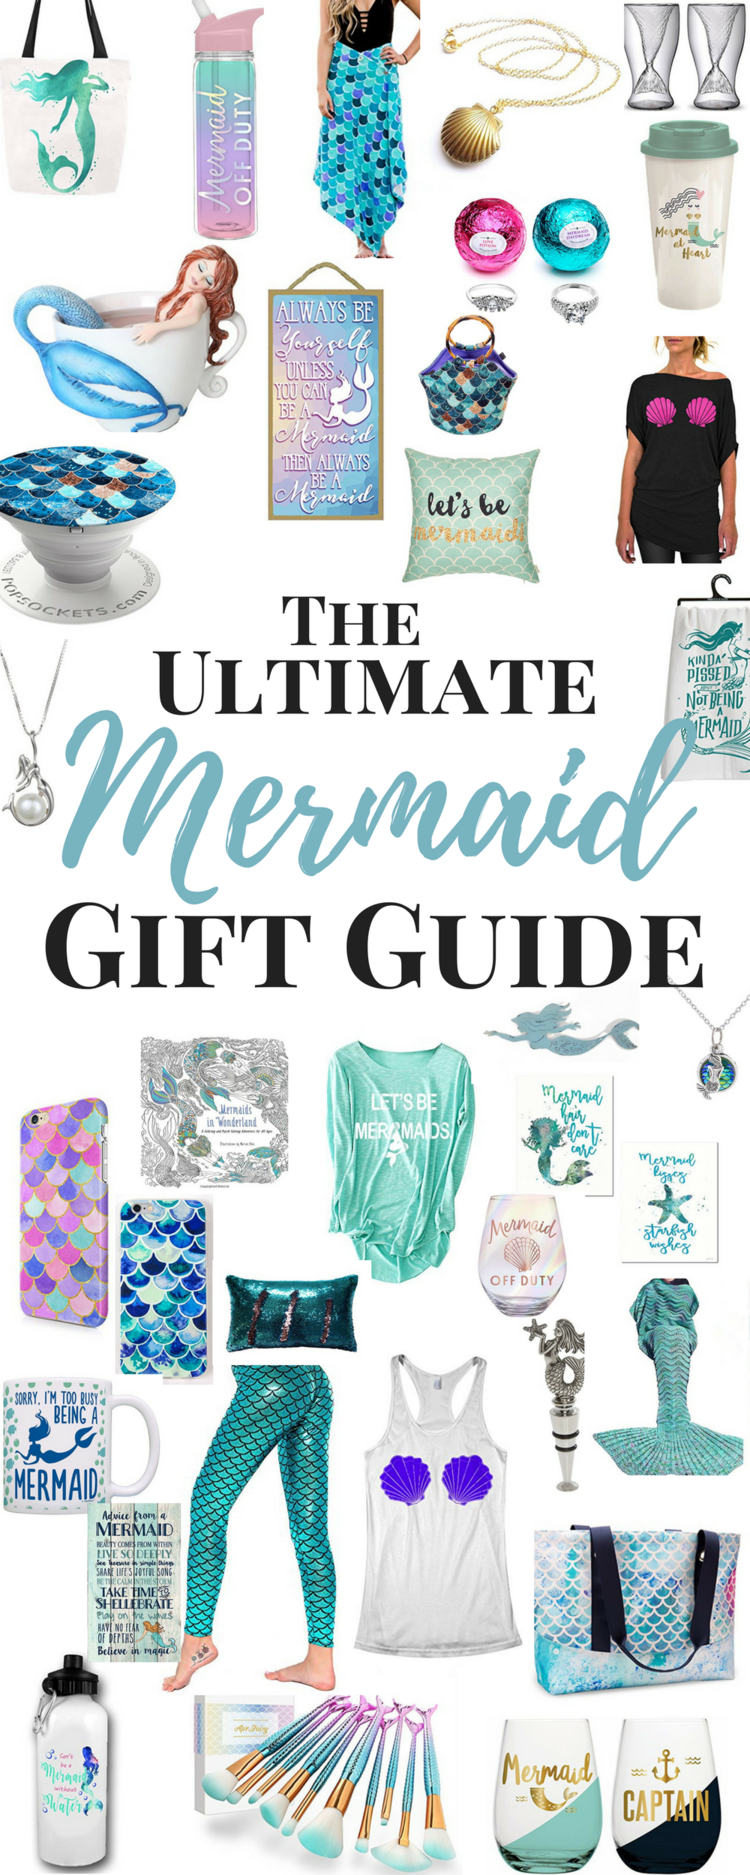 Holiday Gift Guides With Images Mermaid Gifts Little Mermaid